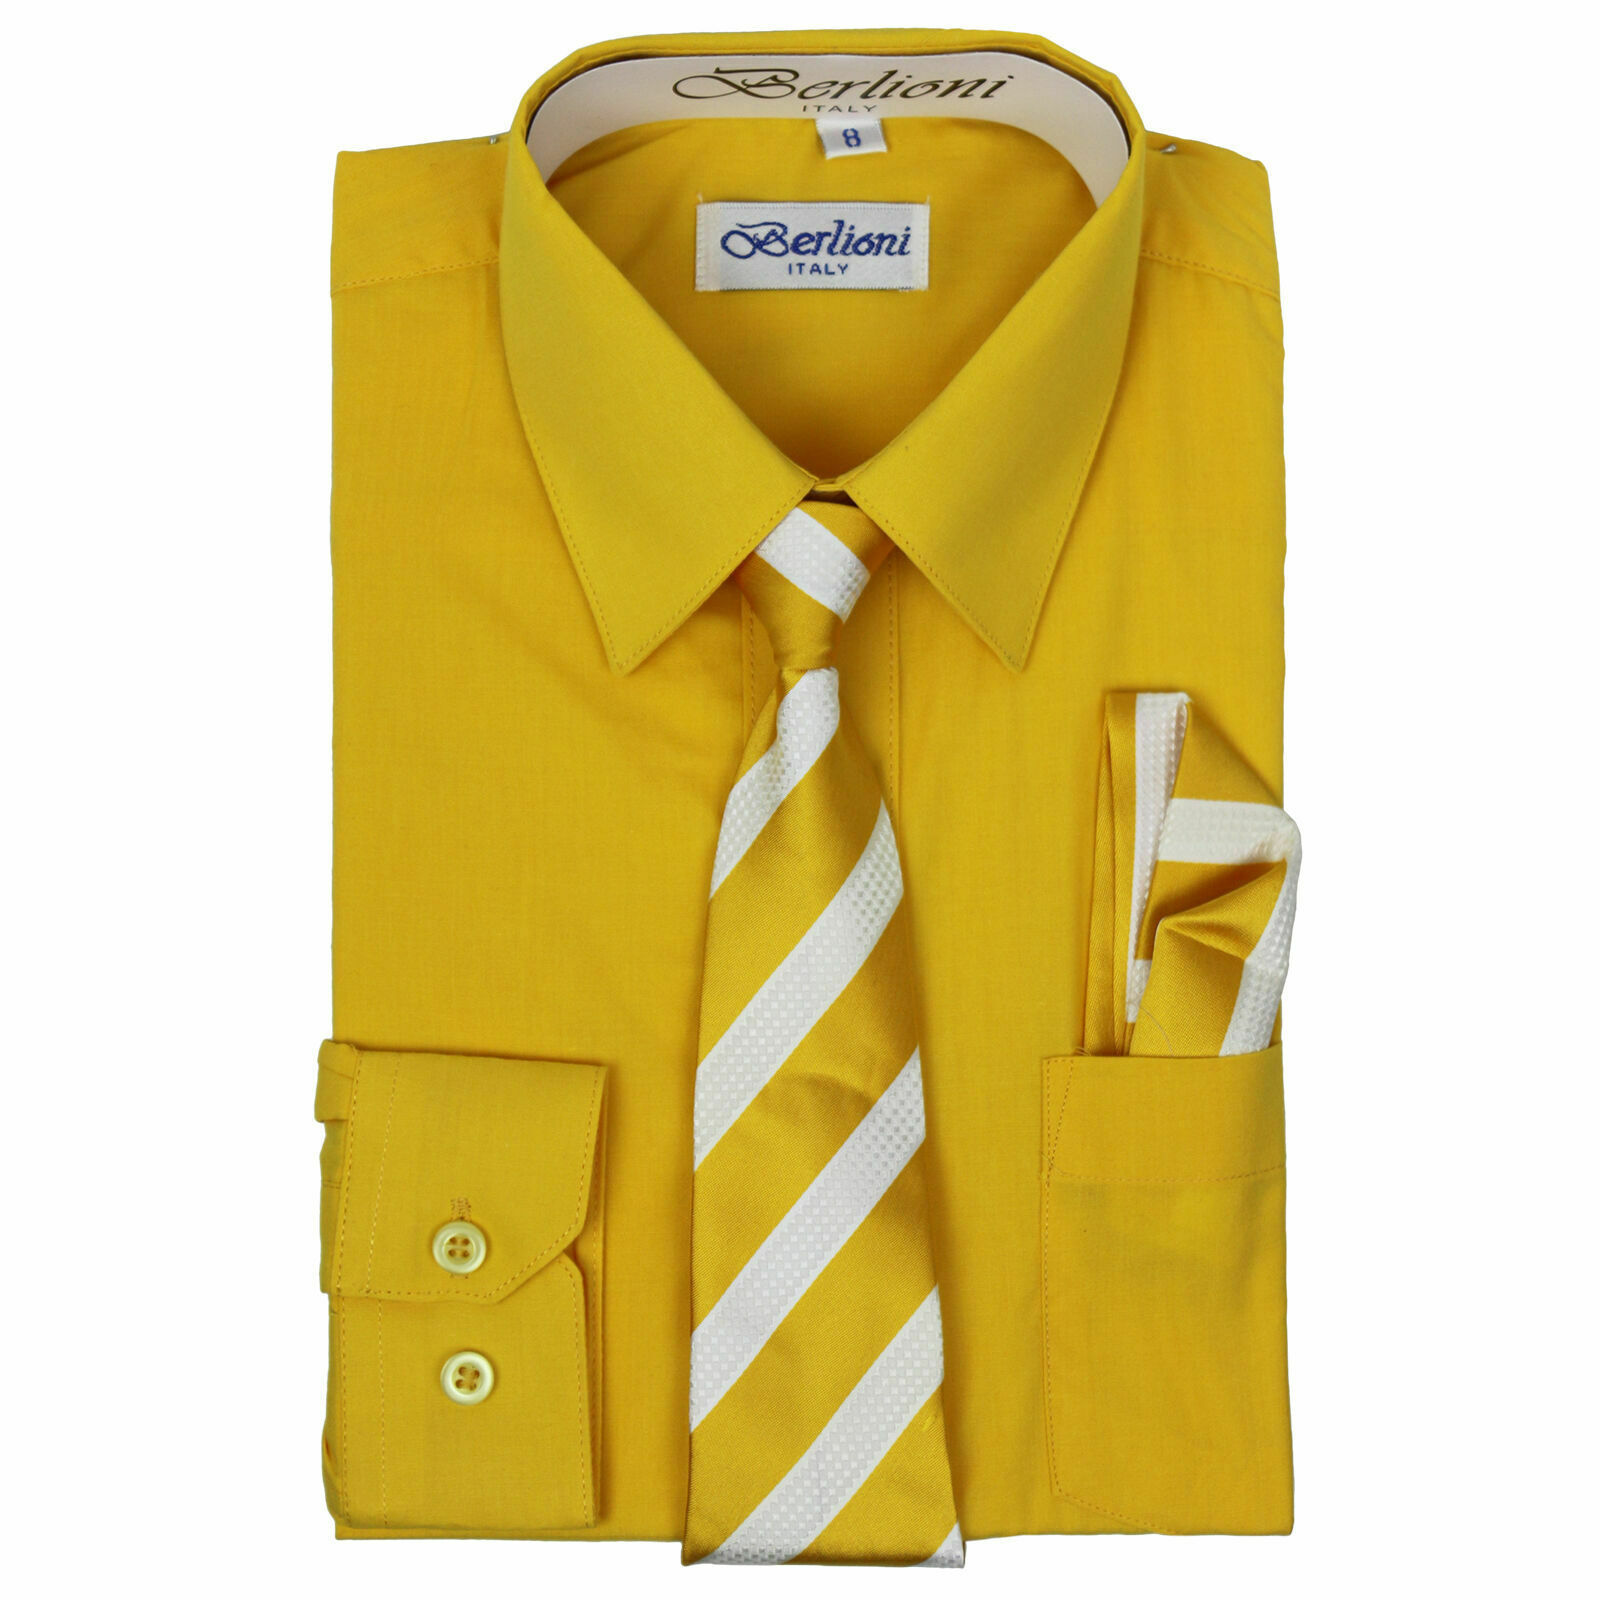 Berlioni Italy Kids Boys Long Sleeve Gold Dress Shirt Set With Tie & Hanky - 16